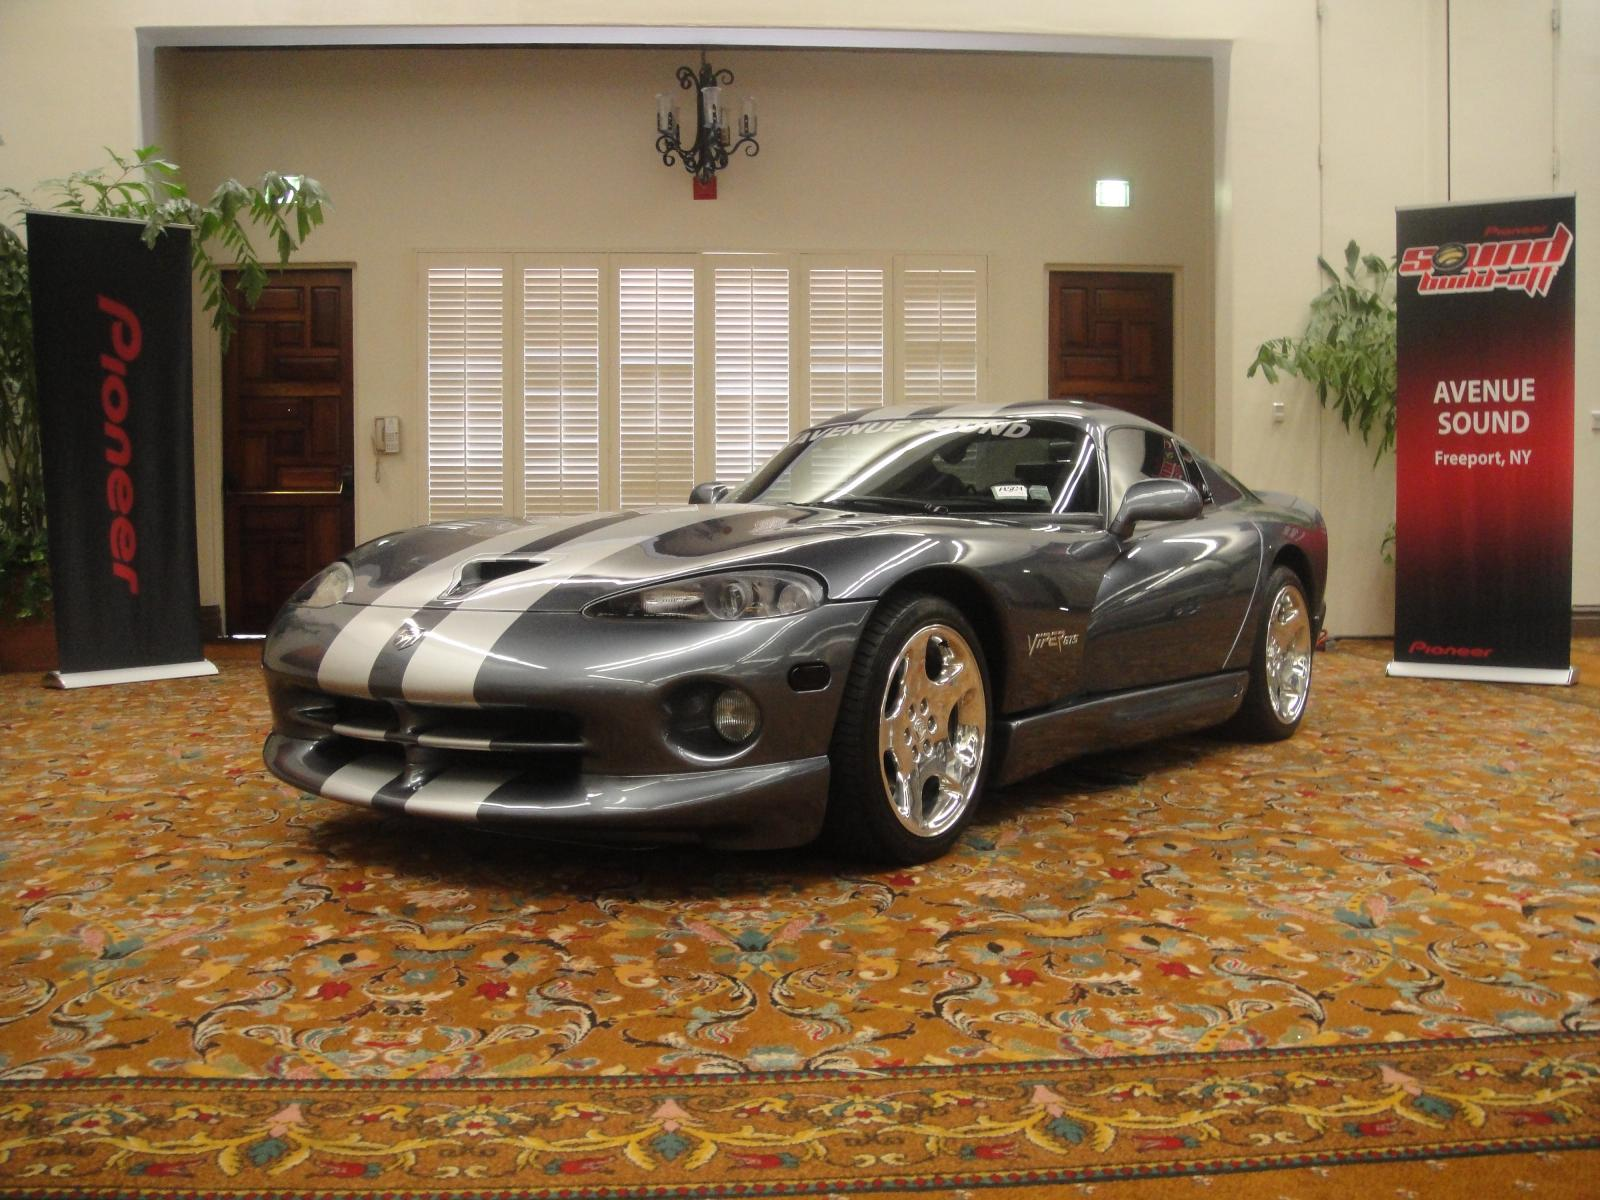 Avenue Sound's Dodge Viper